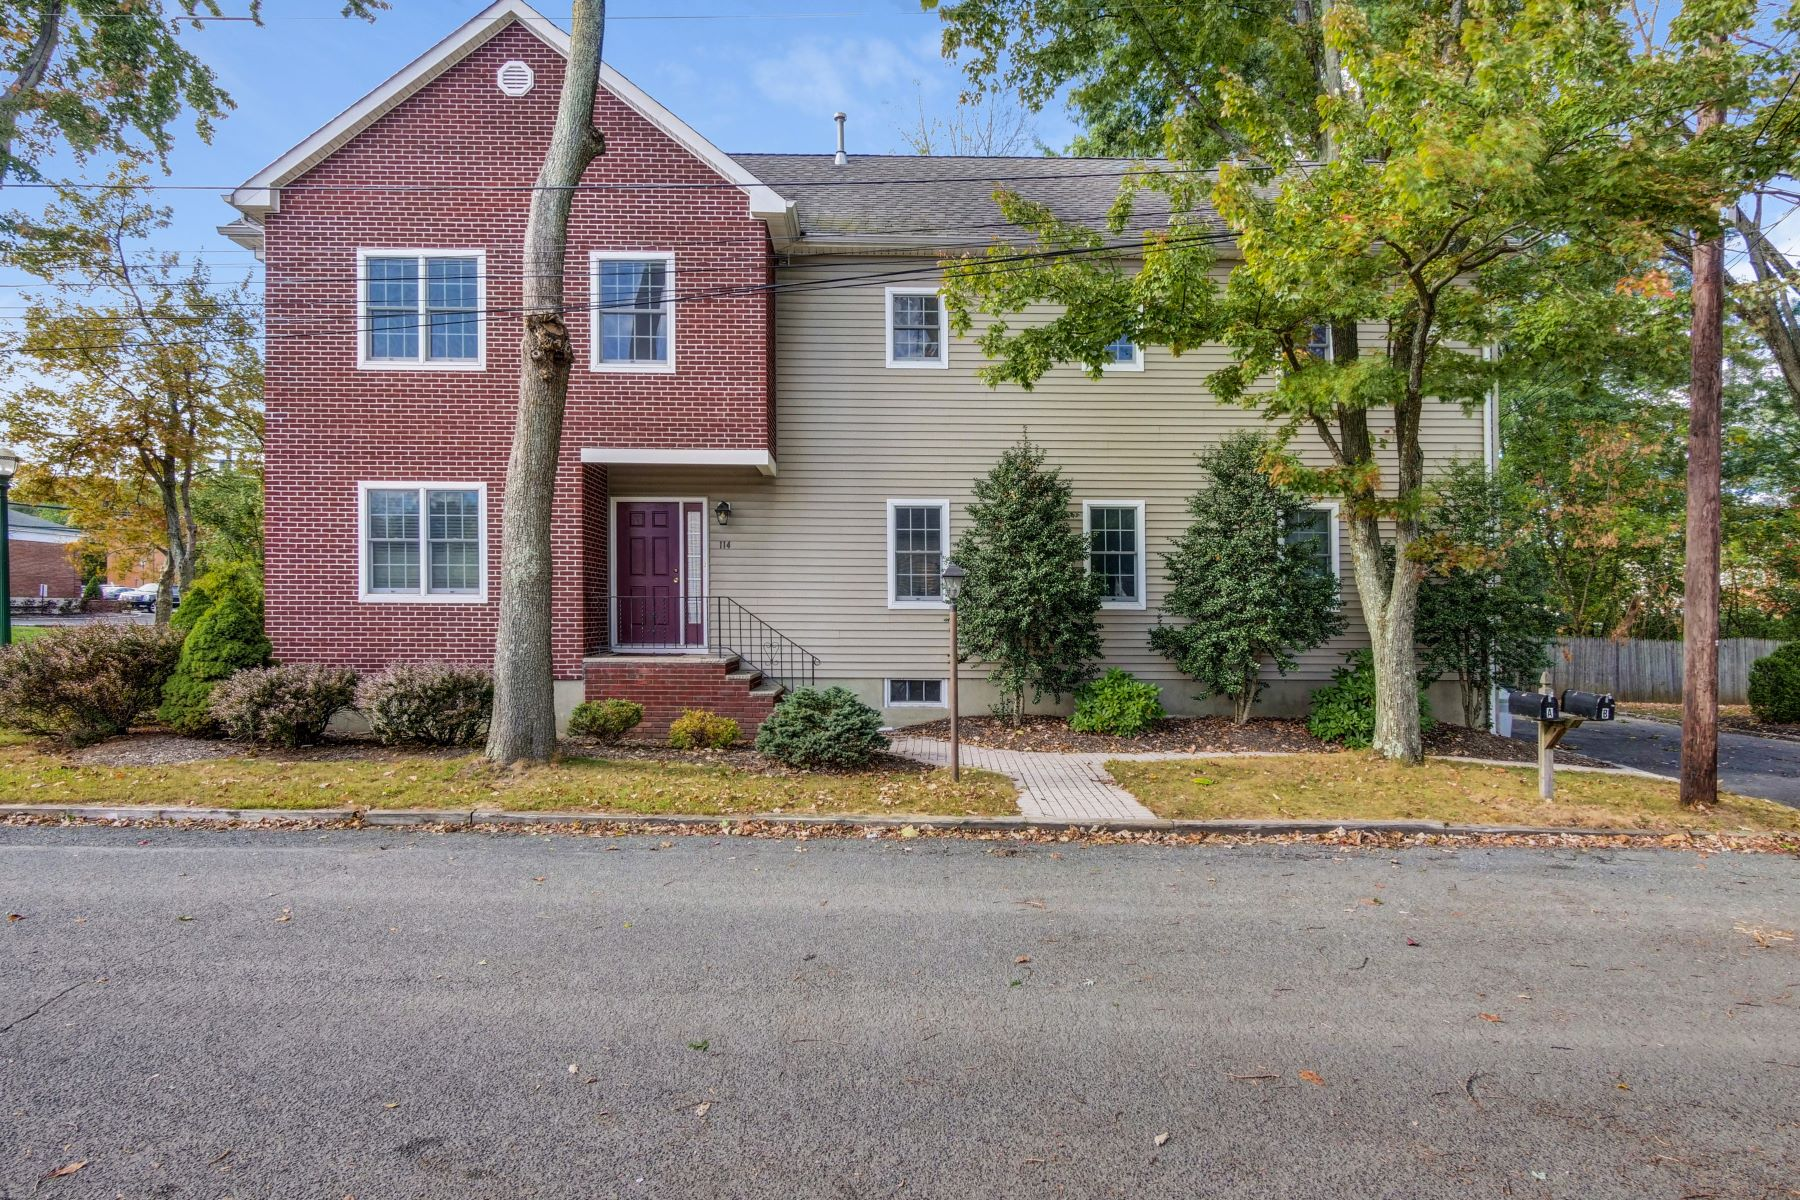 Duplex Homes for Sale at Duplex in Town 114/116 Snyder Avenue Berkeley Heights, New Jersey 07922 United States